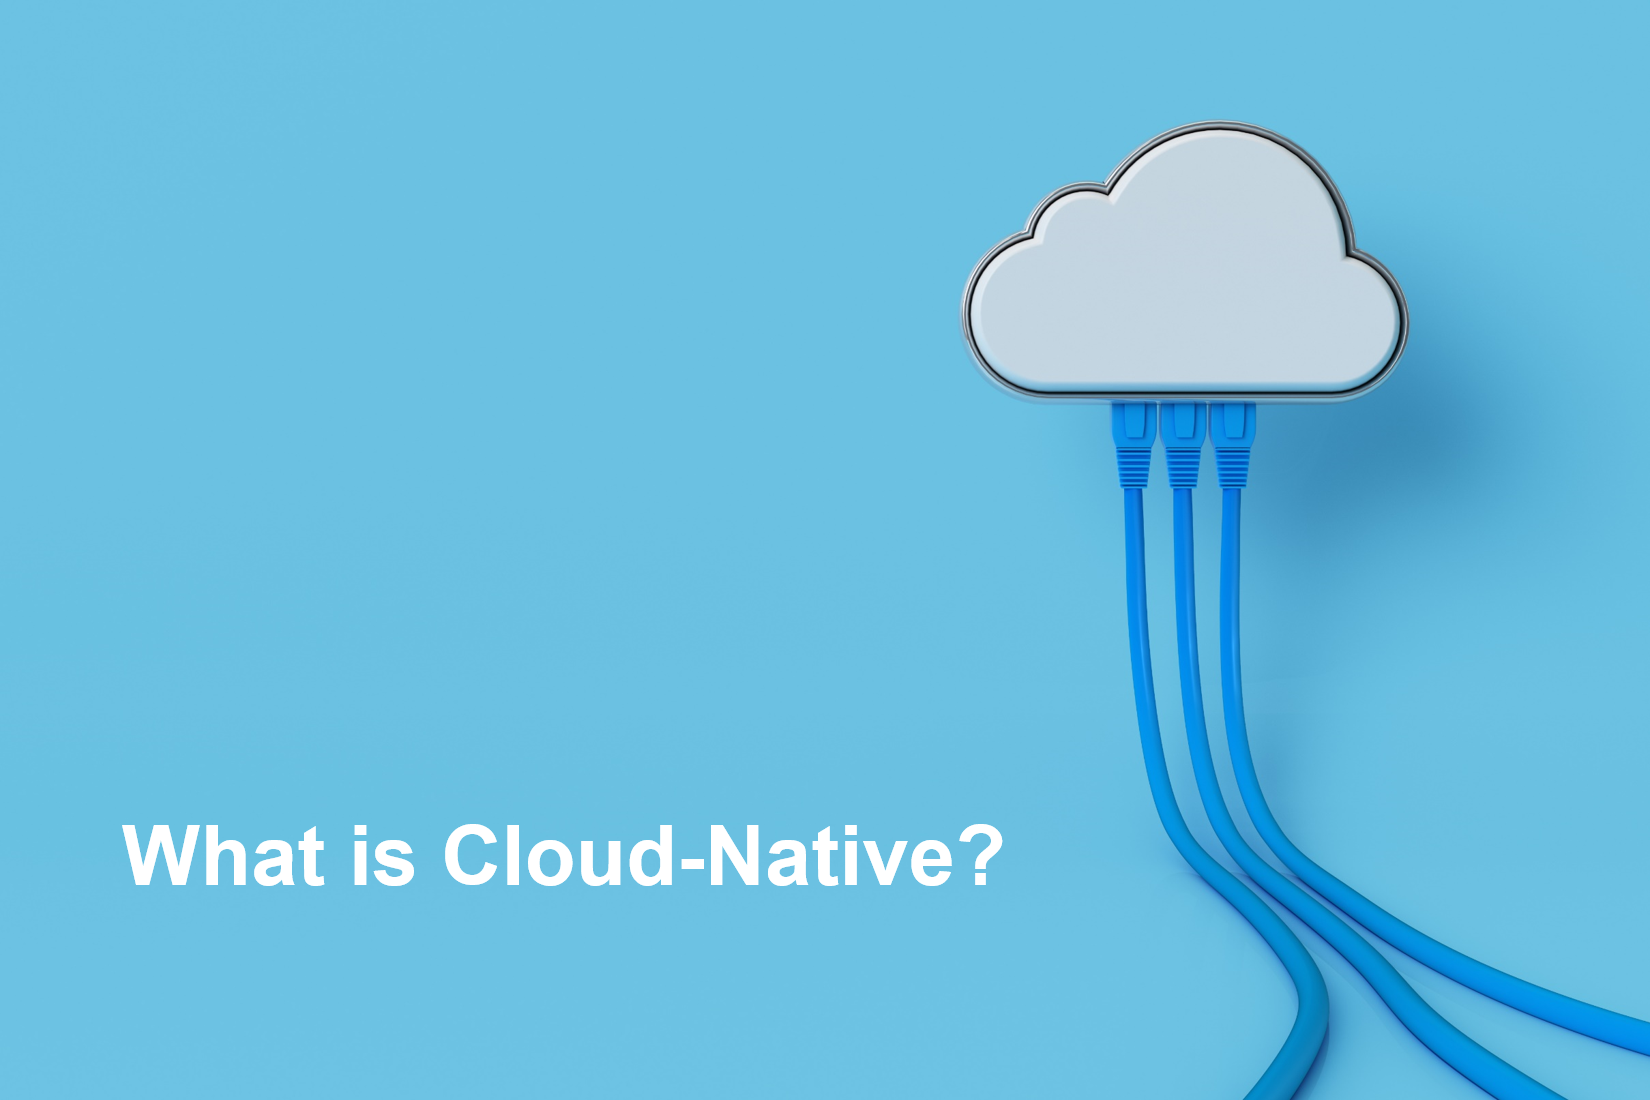 What is cloud native